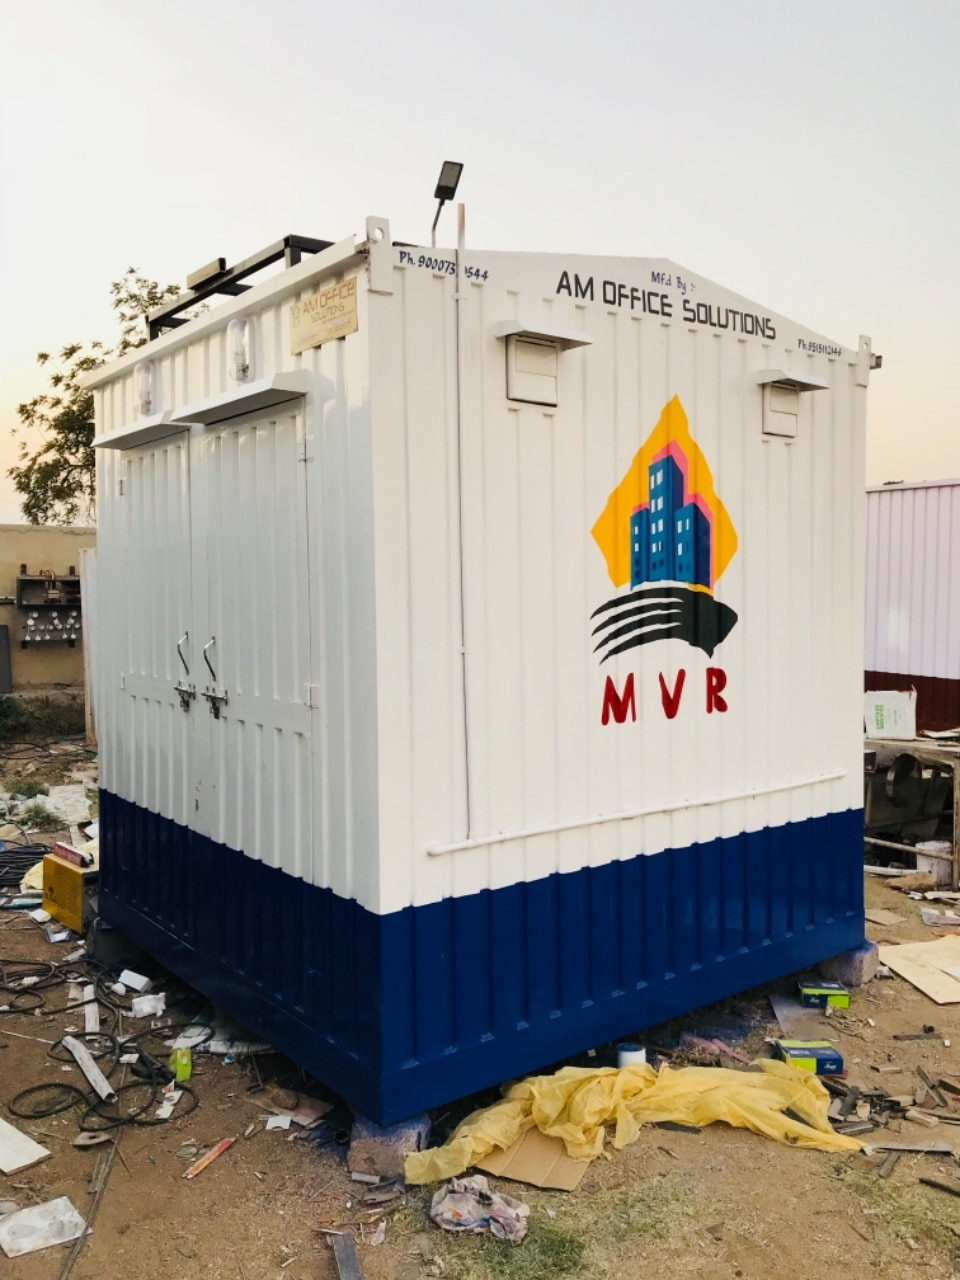 "TECHNICAL SPECIFICATION : Container Dimension:–8' (length) x 4' (width) x 8.5' (height).  1.	M. S. Corrugated Exterior. 2.	Insulated Door. Size 3' x 6'.5''Lockable. 3.	Painting ""Water Proof Paint"" Safe from Rain and Sunlight. 4.	Thermocol Installations on Top & 4 Sides. 5.	On Four Sides Water & Fire Resistance                                                            Hylam Sheets Installed. 6.	Water Pipes Installation. 7.	Water tank stand on the top of the cabin.                    ELECTRICAL FITTINGS: - 1.	Exhaust Fans. 2.	Bulk Head Light Outside the Cabin. 3.	Switches & Electricals Fittings. 4.	1 Bulb inside. 5.	Main Cable Entry Socket with Aluminum.     	Toilet (4'x4') •	IWC. •	Wash Basin. •	Health Faucet. •	Tap. •	Water tank stand."